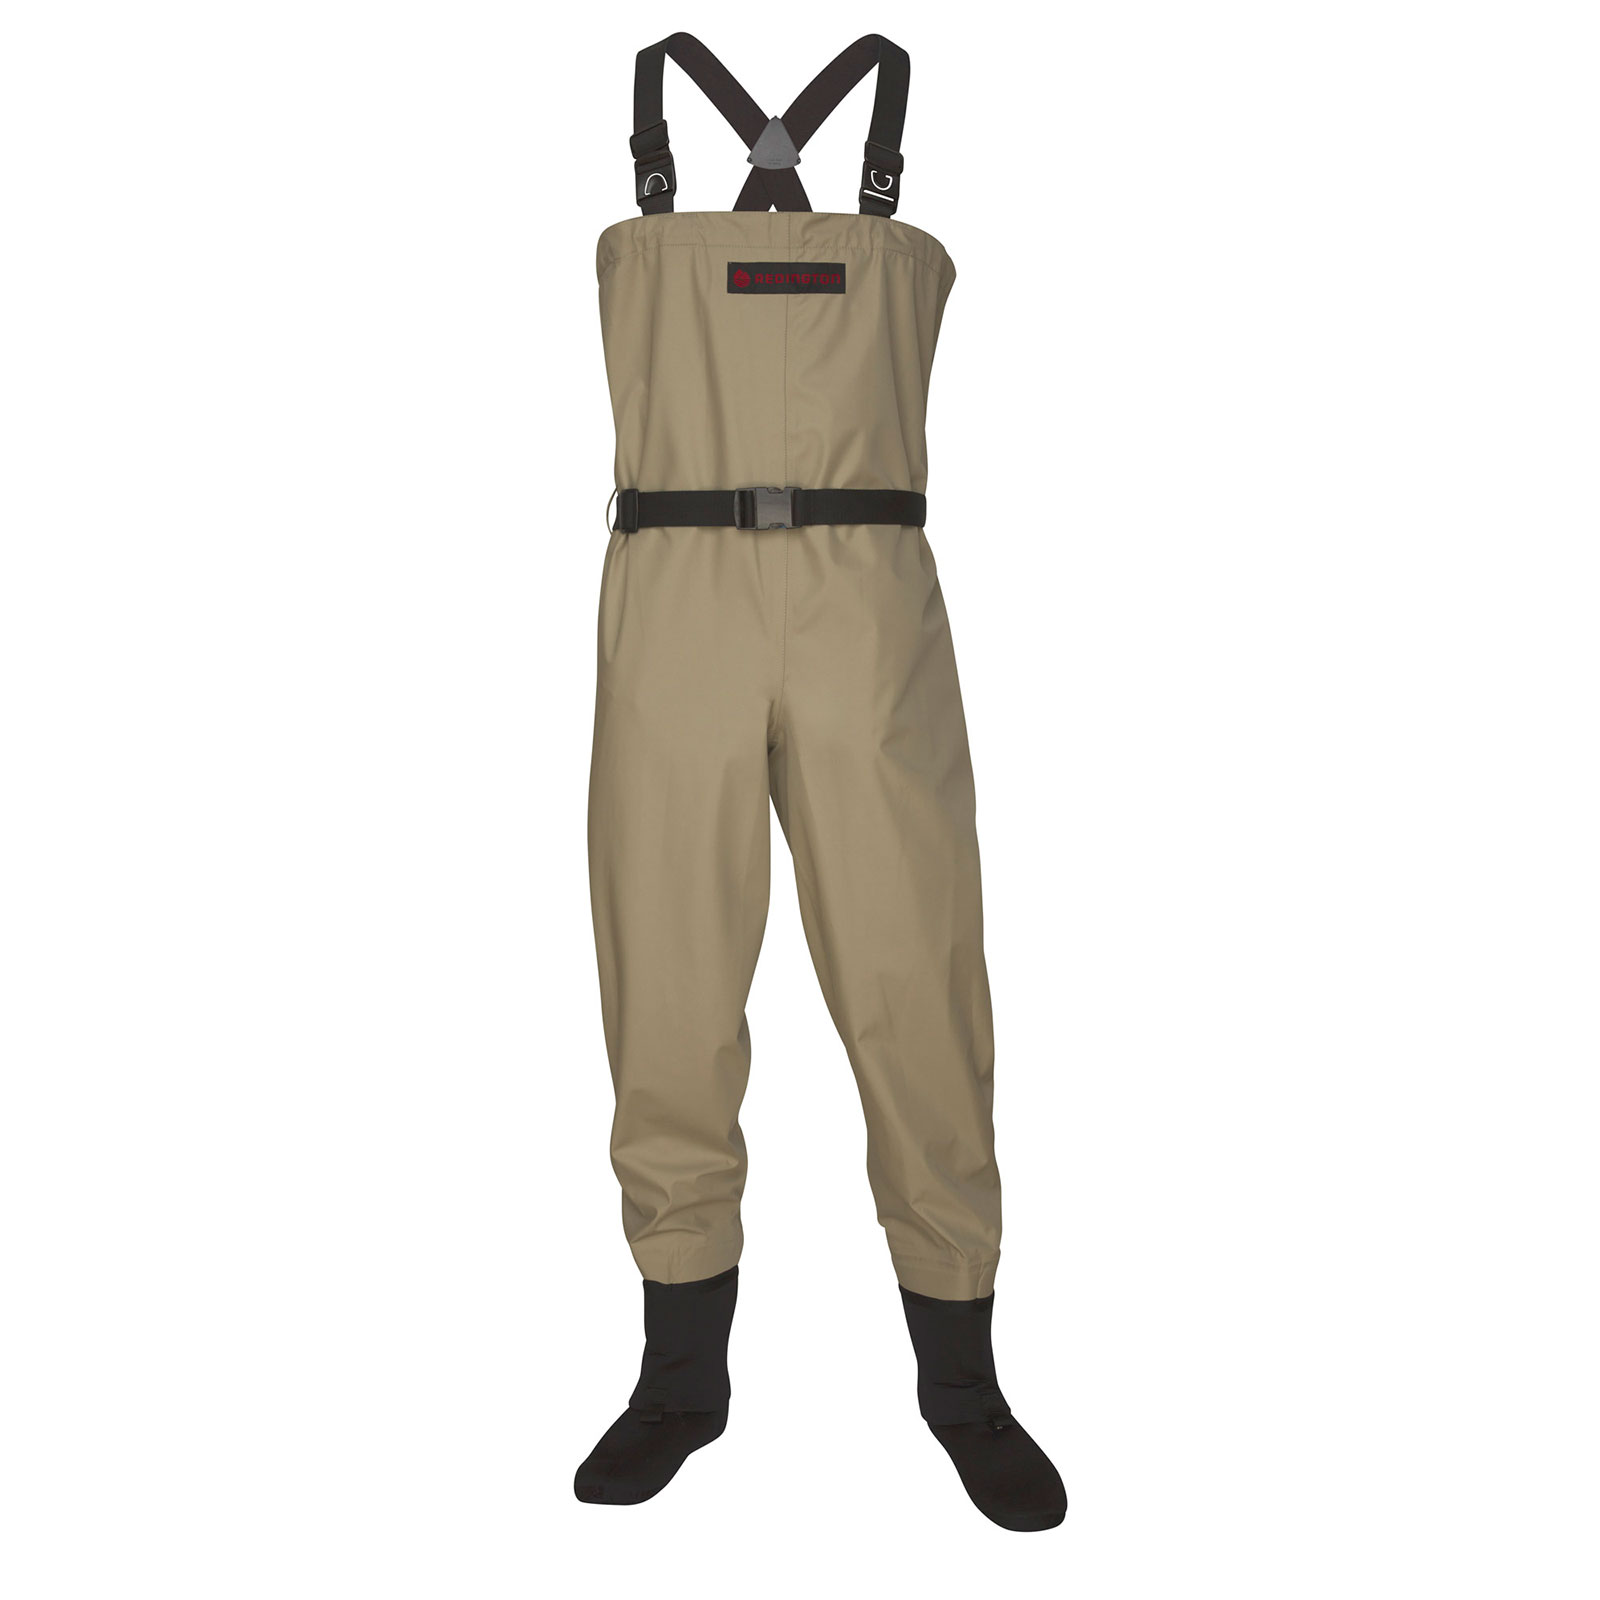 Redington Crosswater Stockingfoot Breathable Fly Fishing Waders S,M,L,XL,2XL by Redington